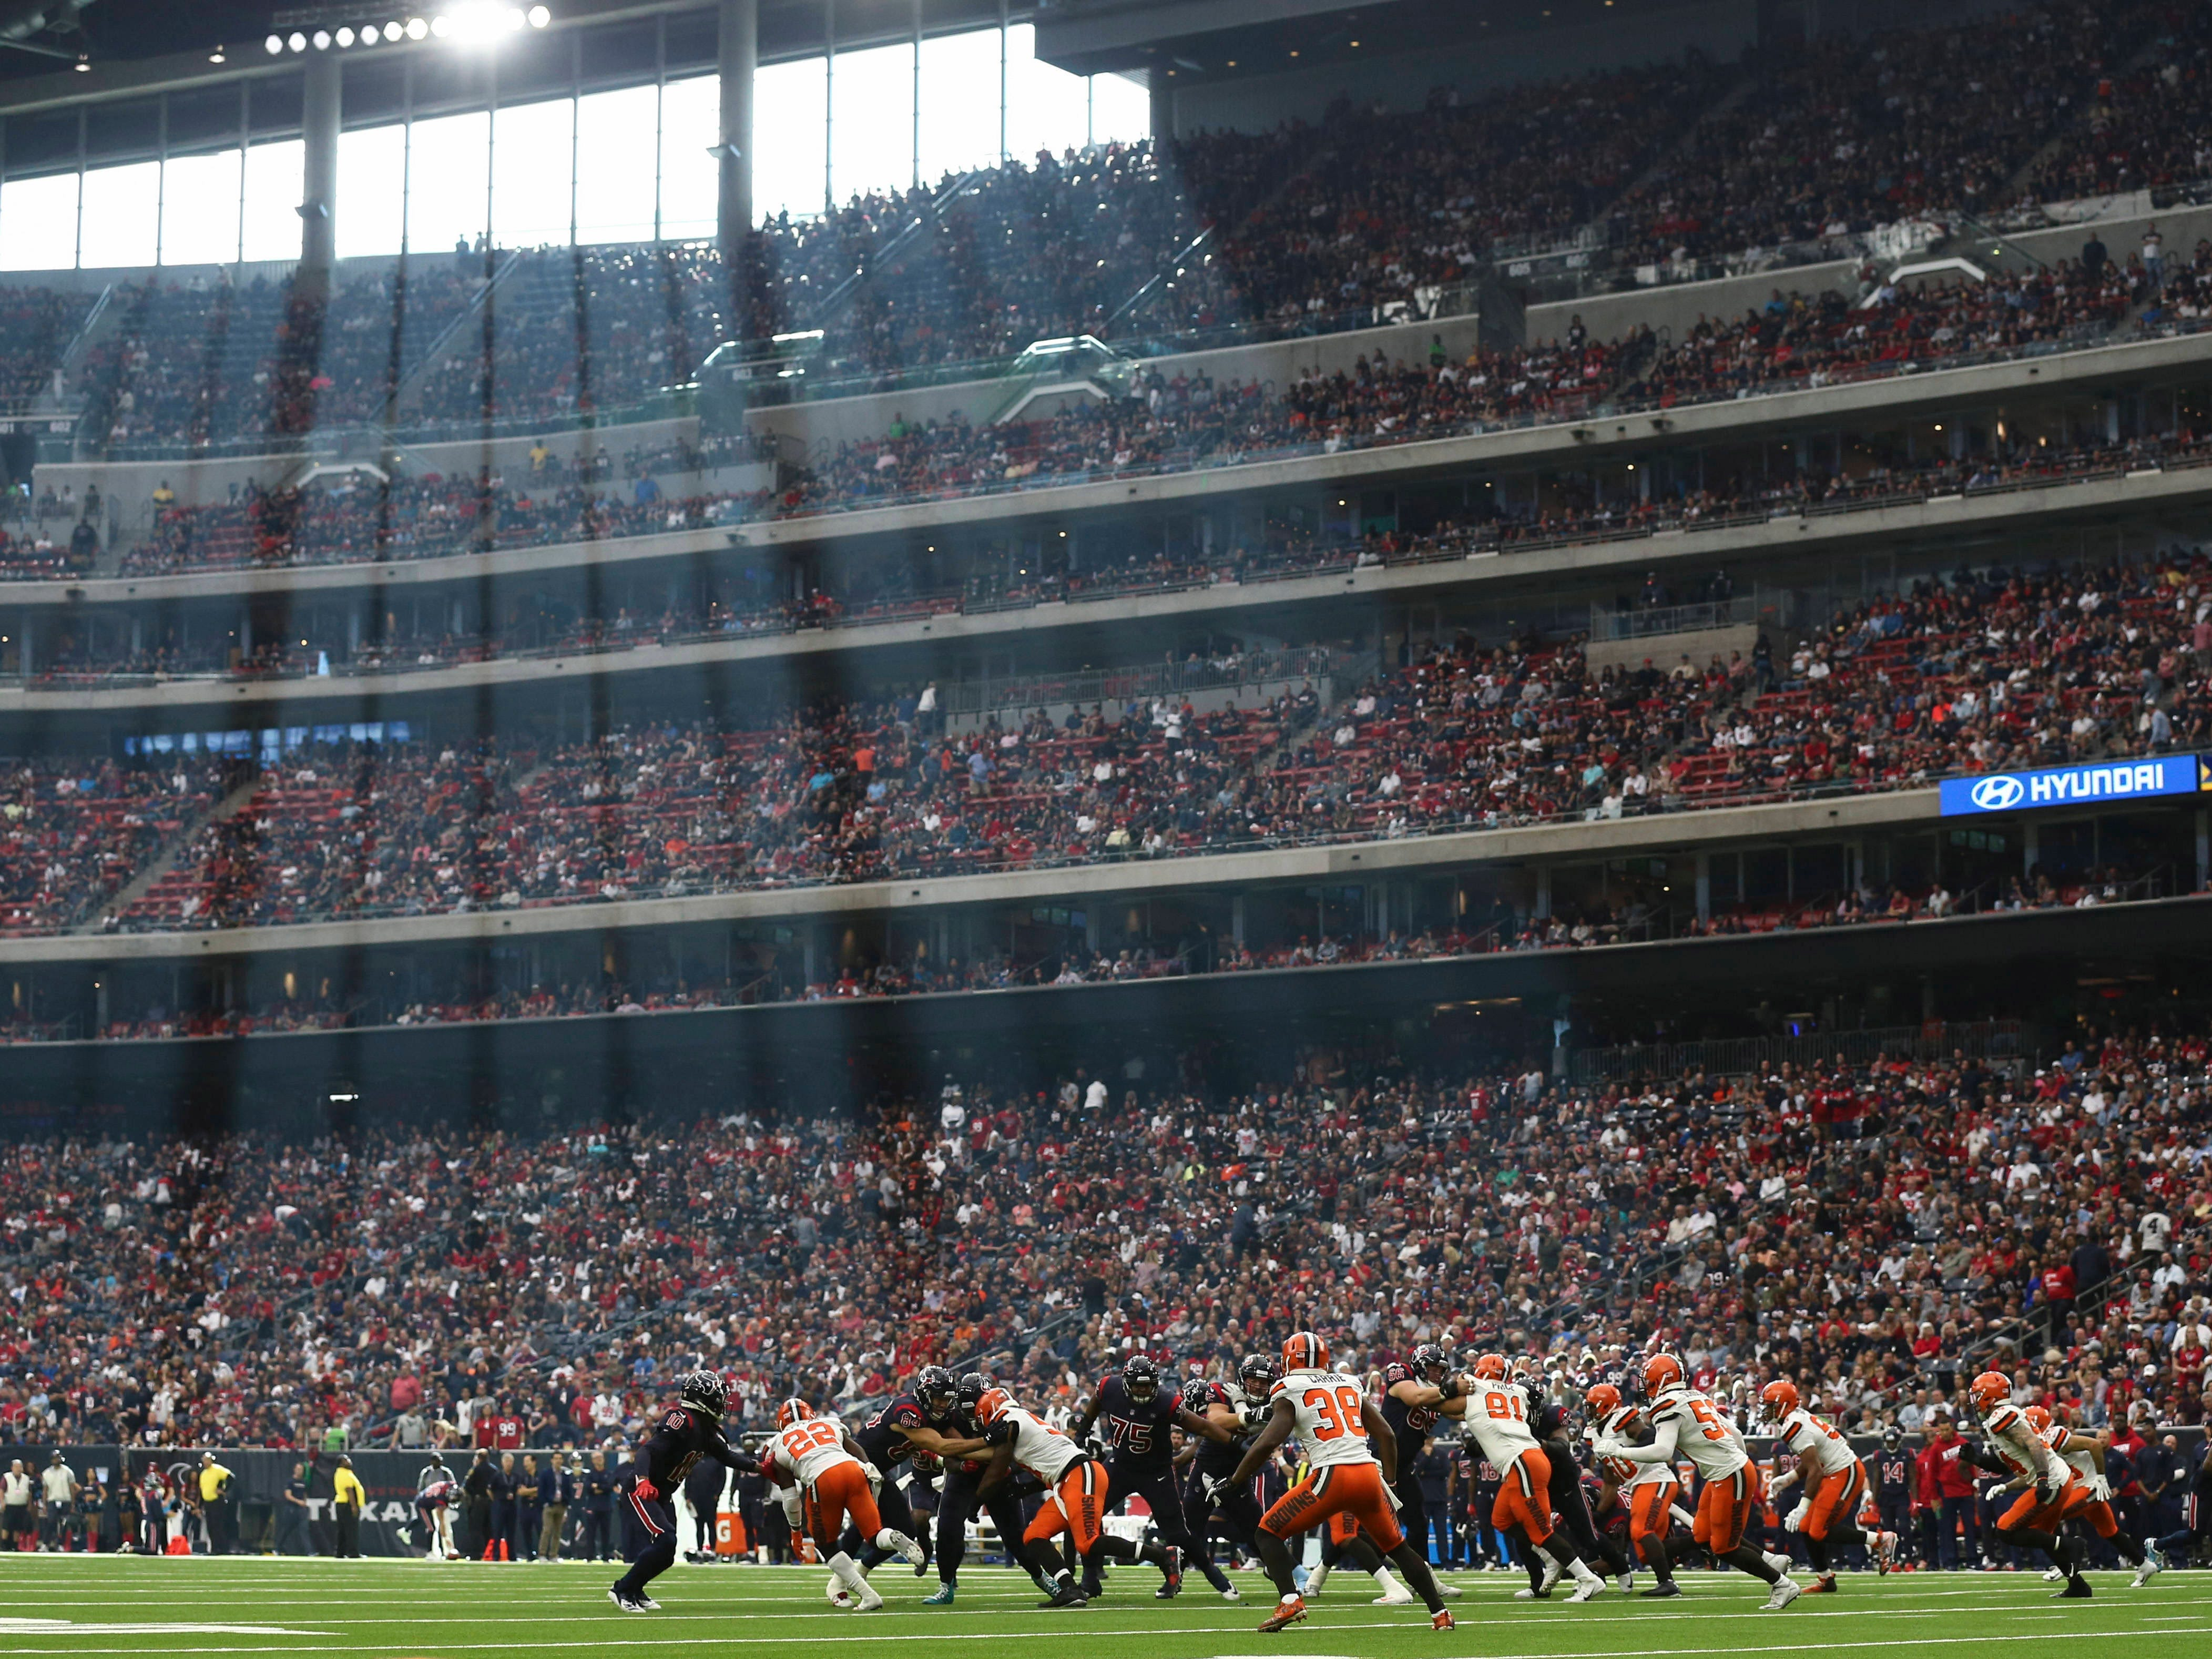 Week 13: The Houston Texans play against the Cleveland Browns at NRG Stadium. The Texans won the game, 29-13.